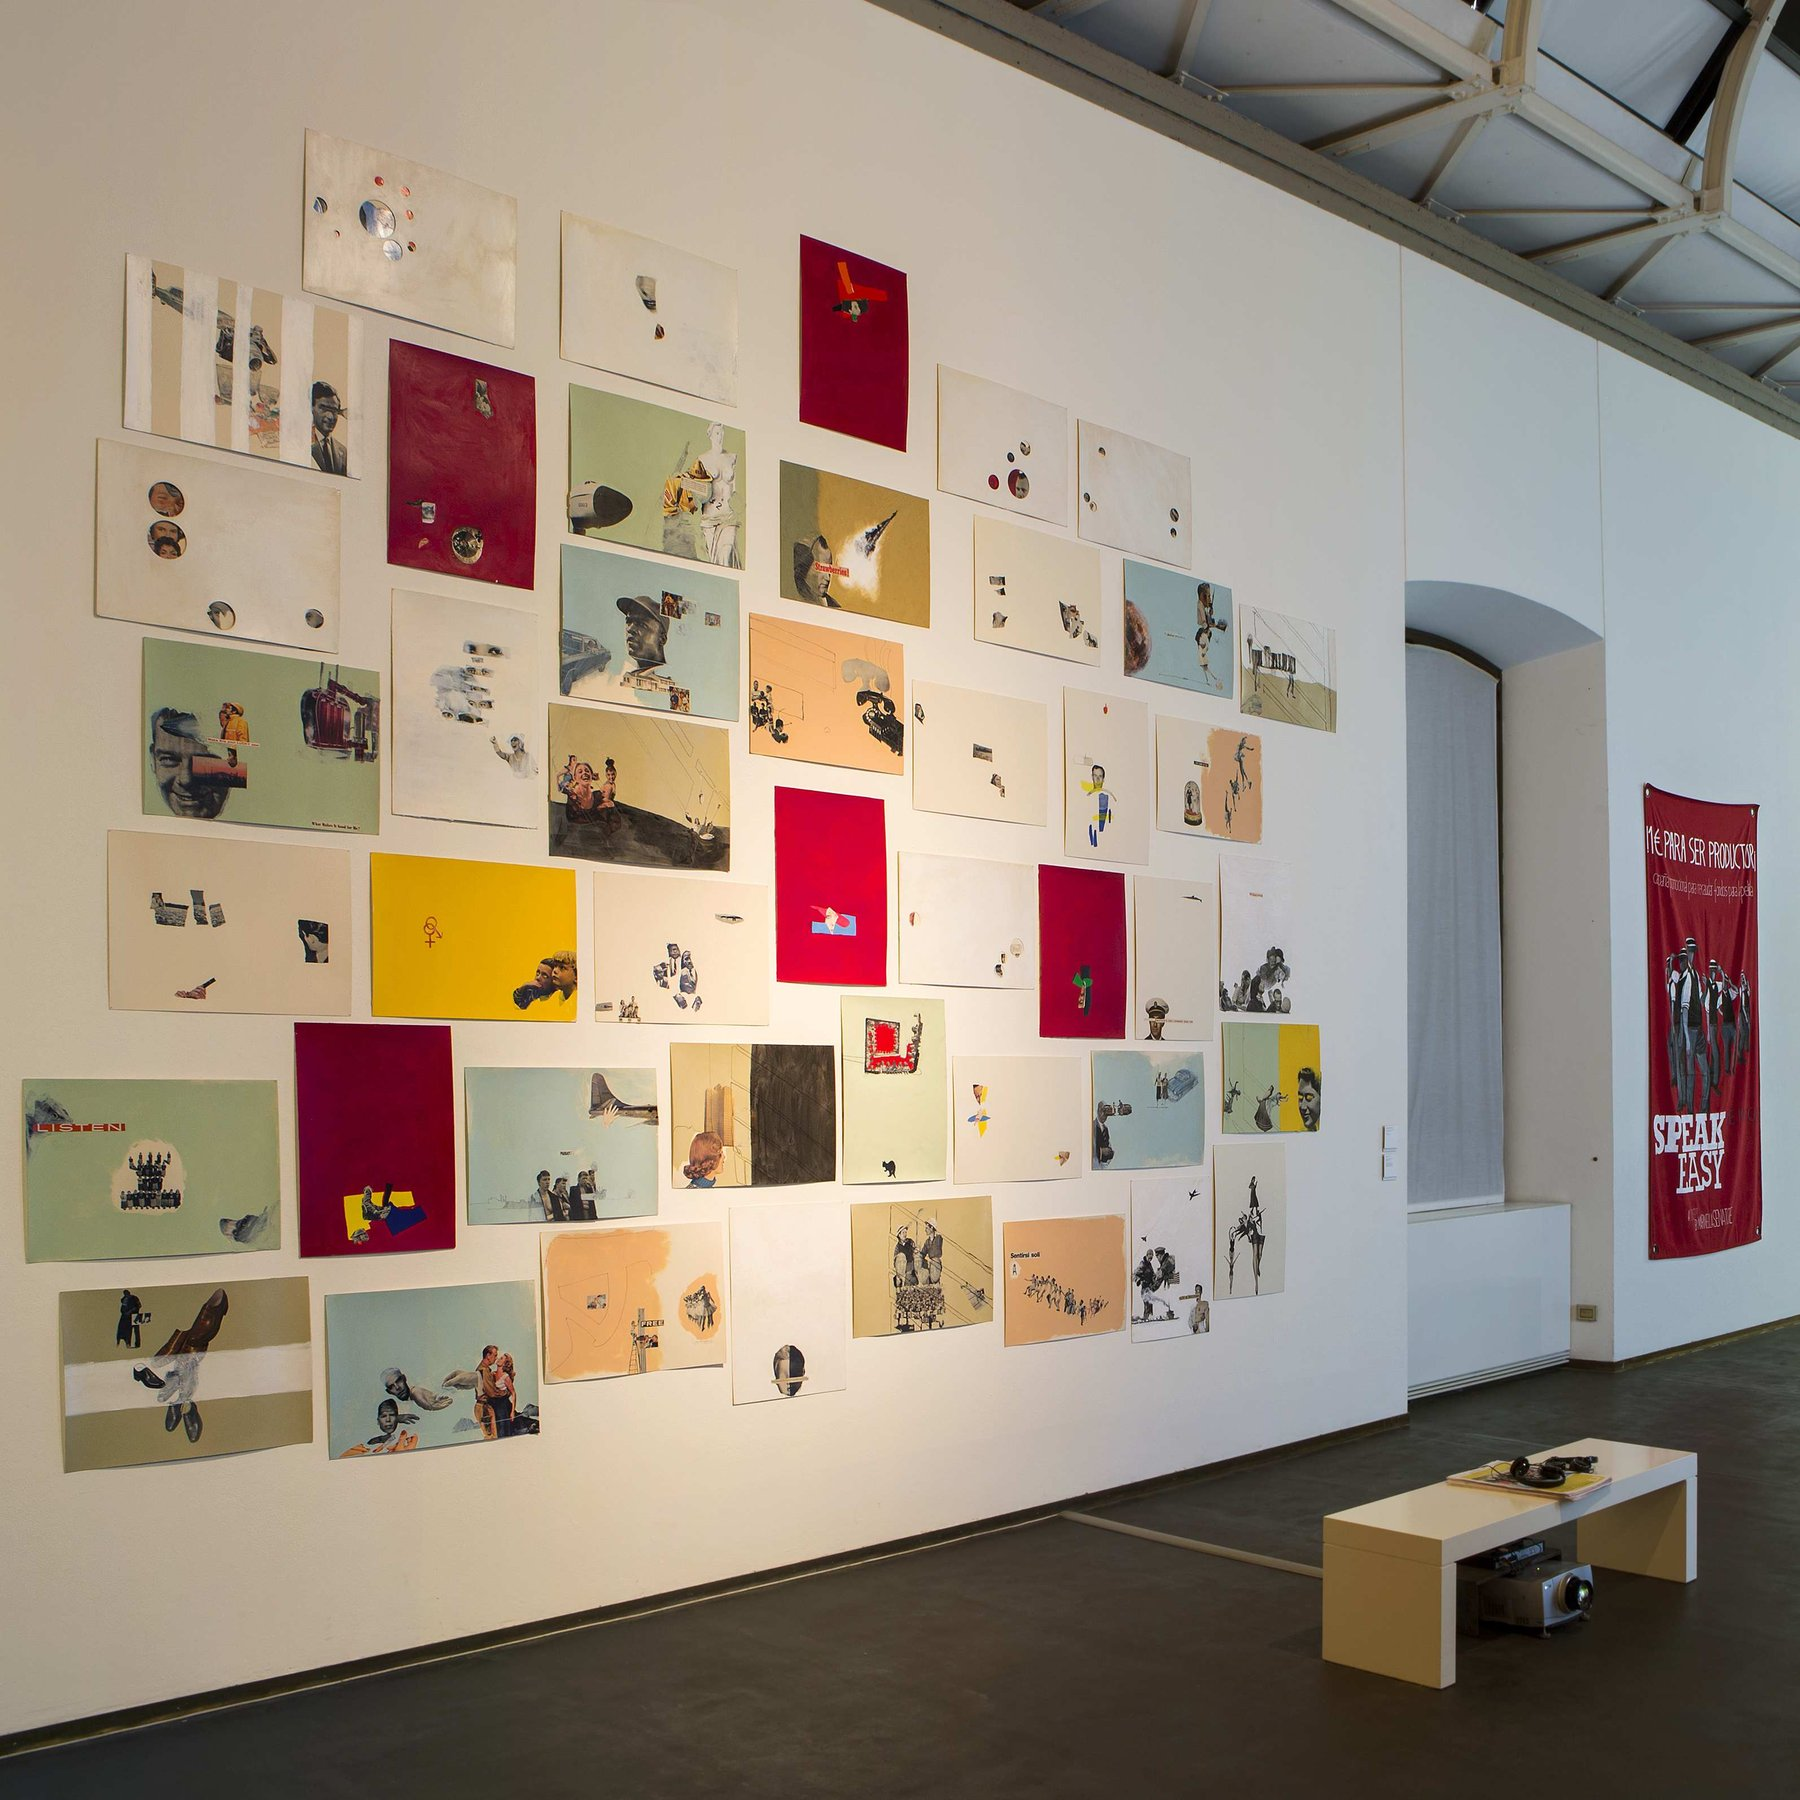 Marinella Senatore Speak Easy, 2009 - 2013 collages on vegetable cardboard 50x70 cm each Installation view at Kunst Halle